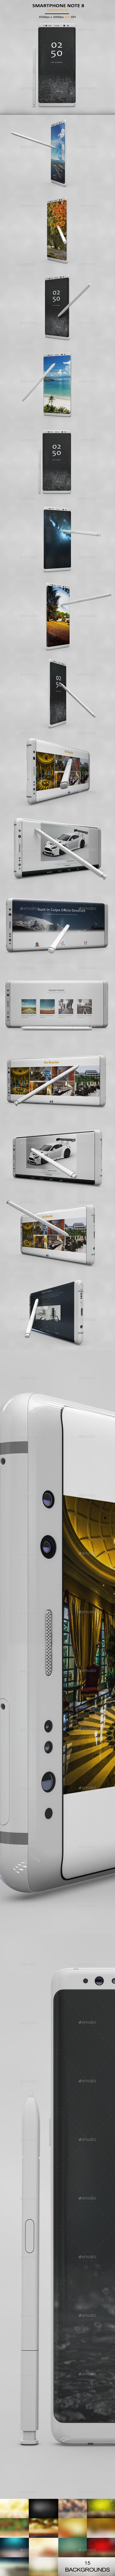 SmartPhone Note 8 MockUp - Product Mock-Ups Graphics